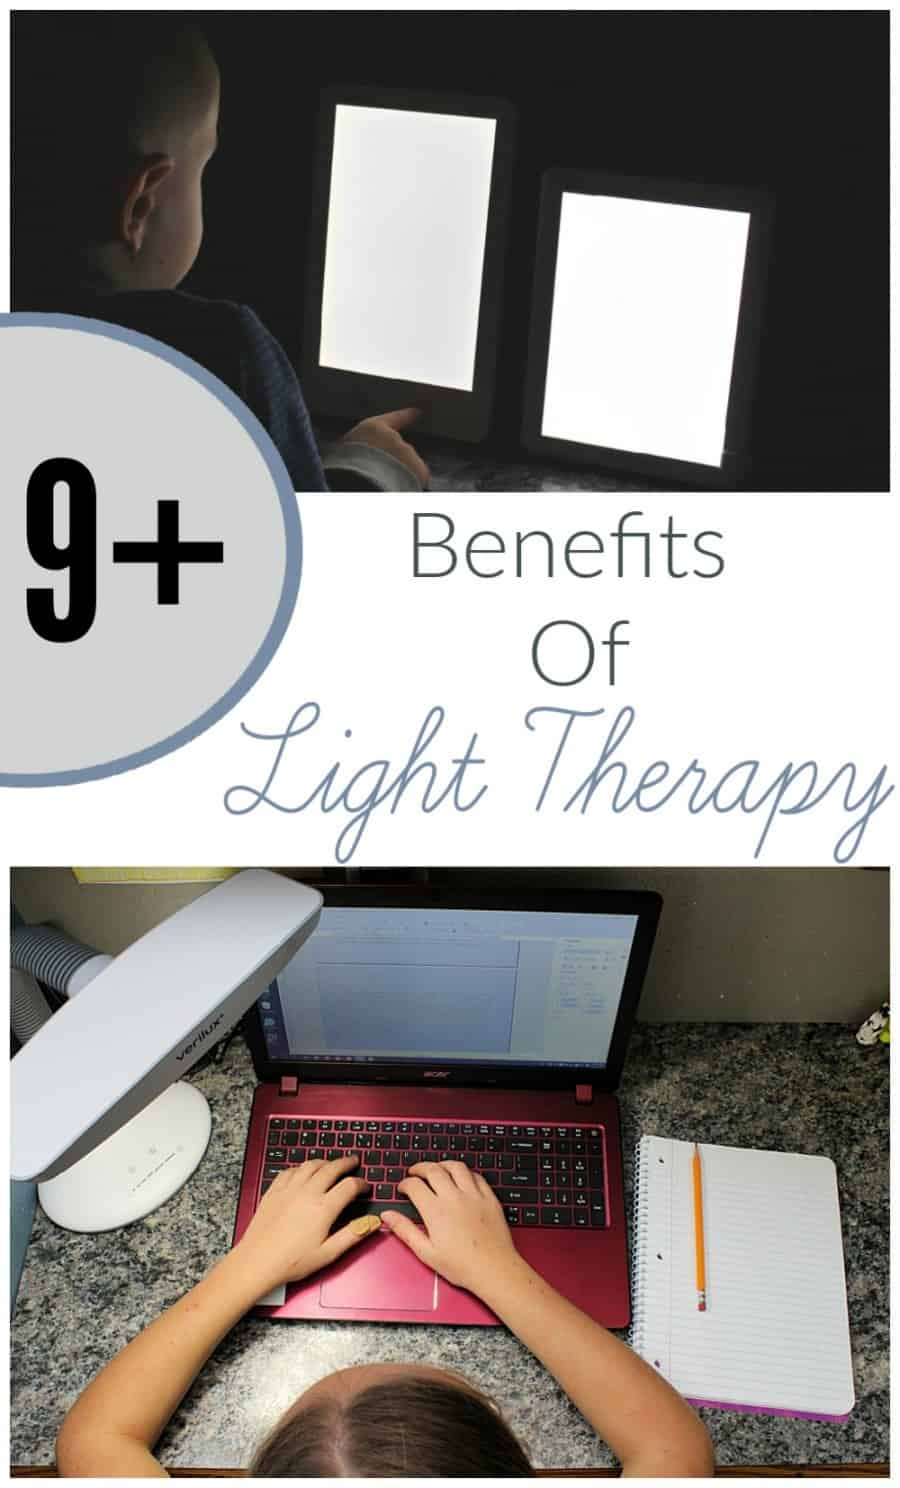 Benefits Of Light Therapy {+ Verilux HappyLight Review}